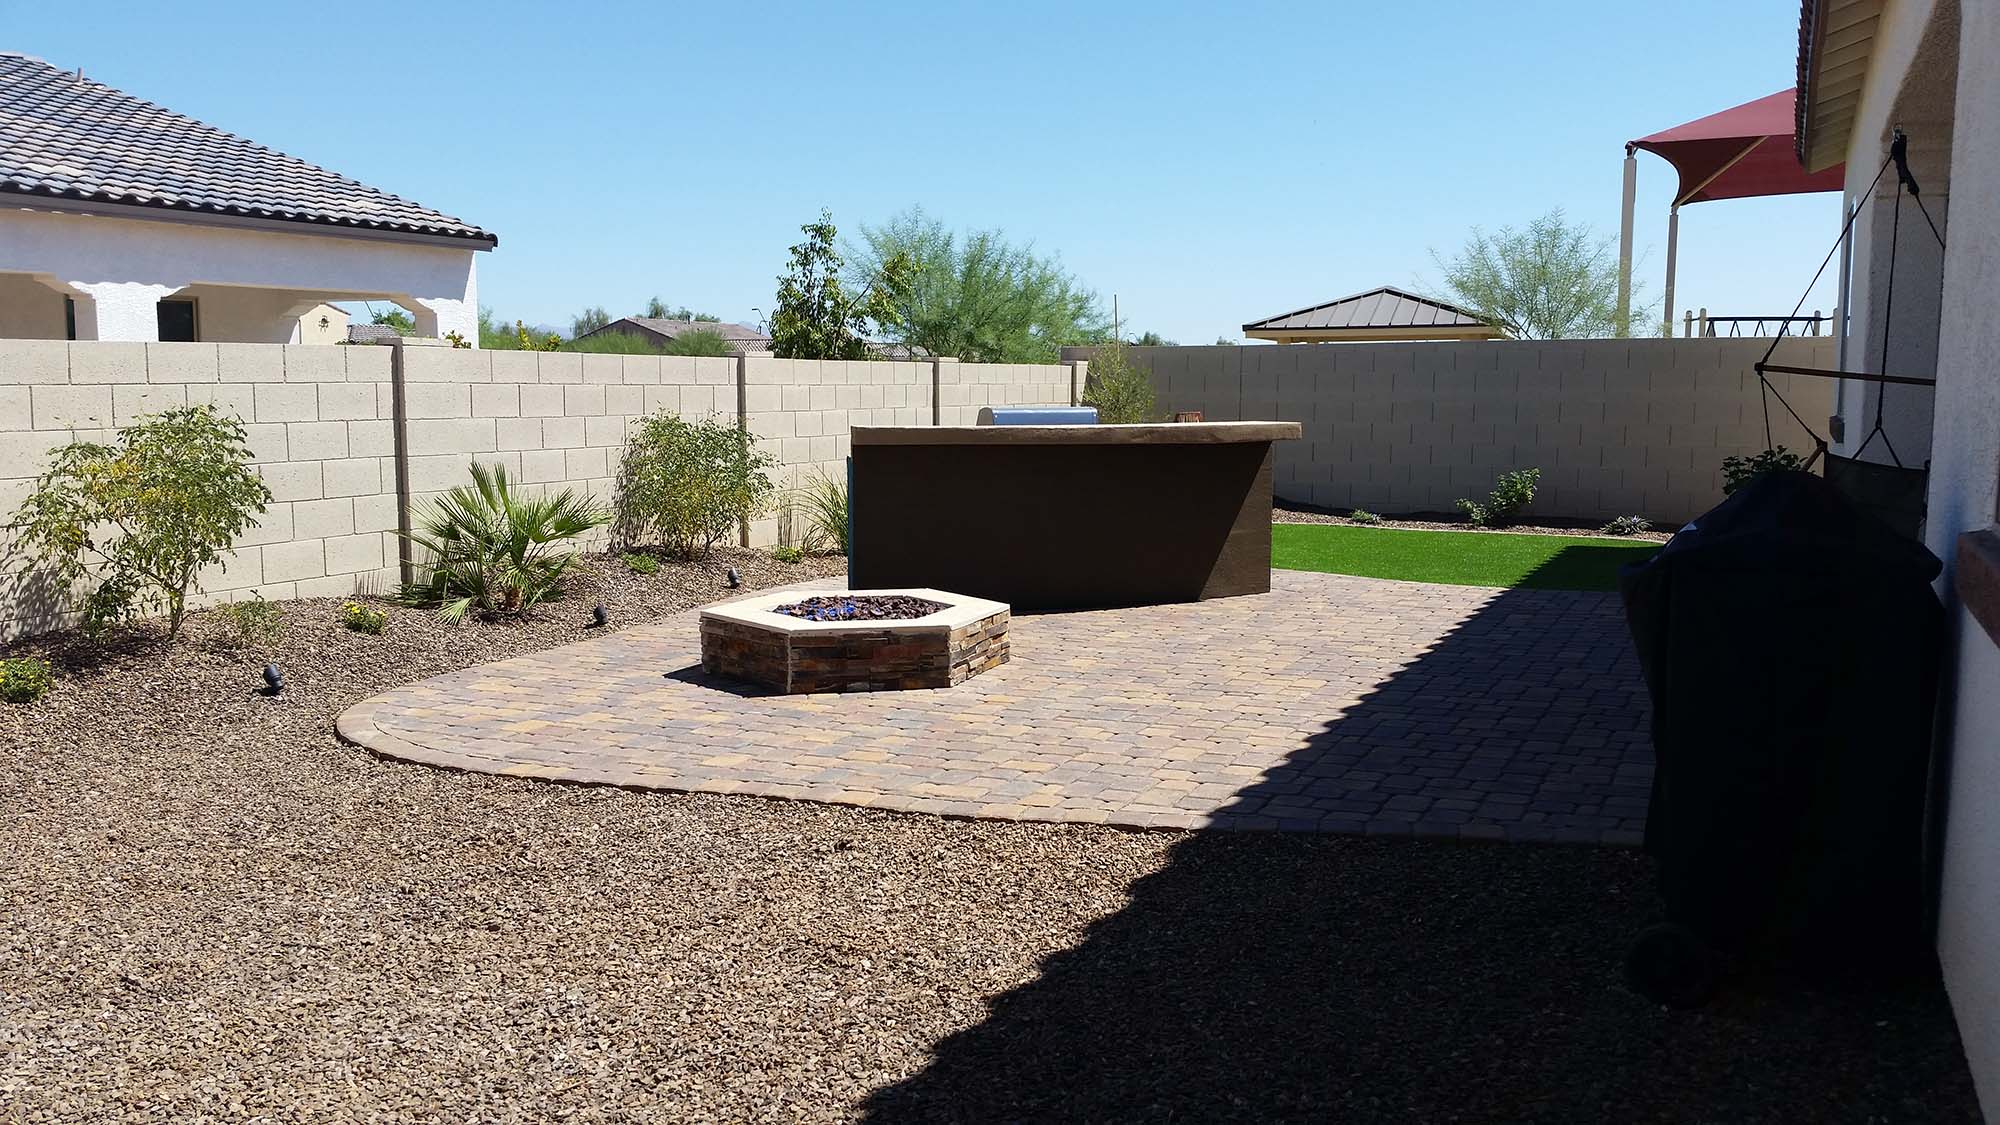 Back yard landscaping design tucson 2017 2018 best for Desert landscape